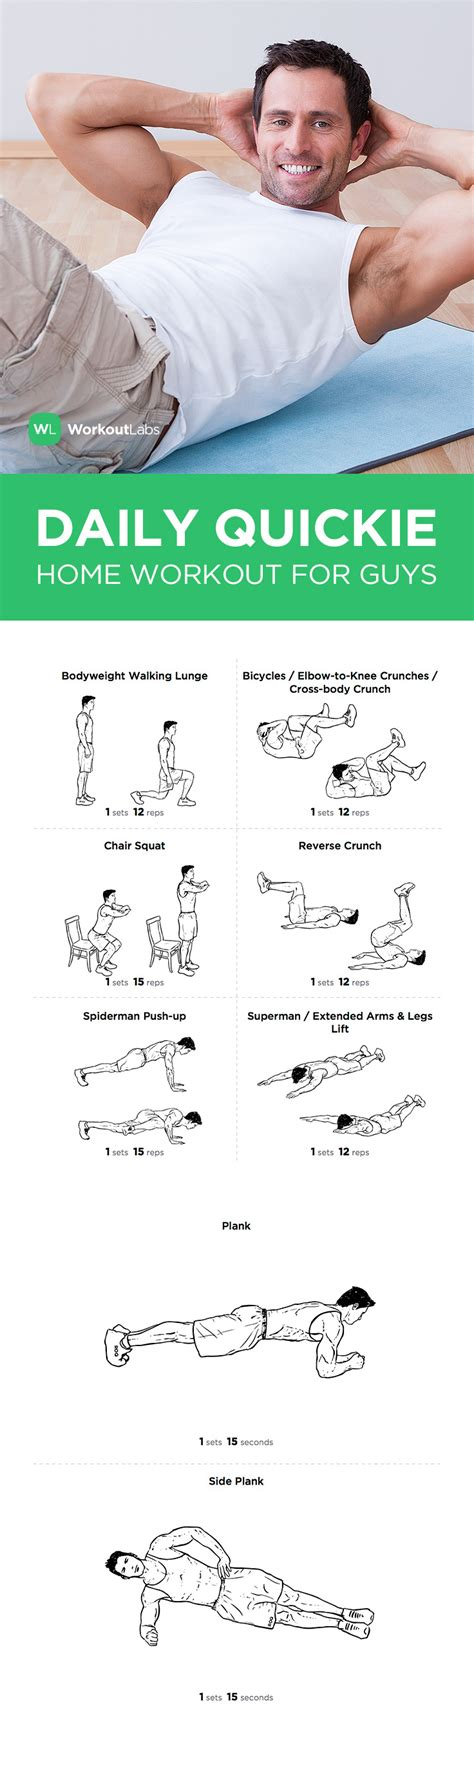 daily workout plan for women at home gym exercises for beginners pdf 1000 ideas about back